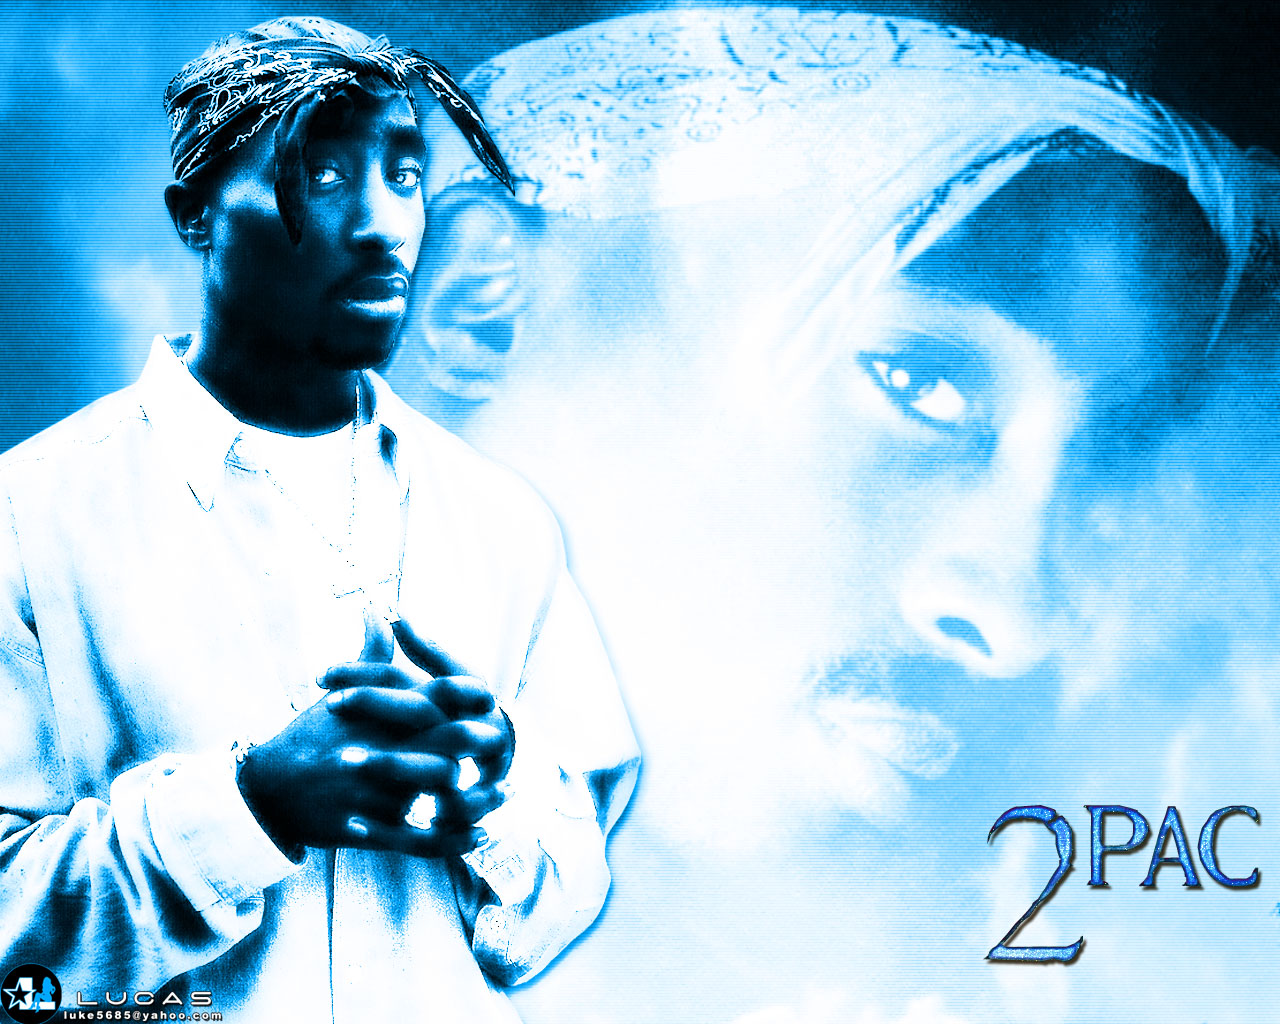 Download High quality 2pac Wallpaper Num 30 1280 x 1024 3621 1280x1024